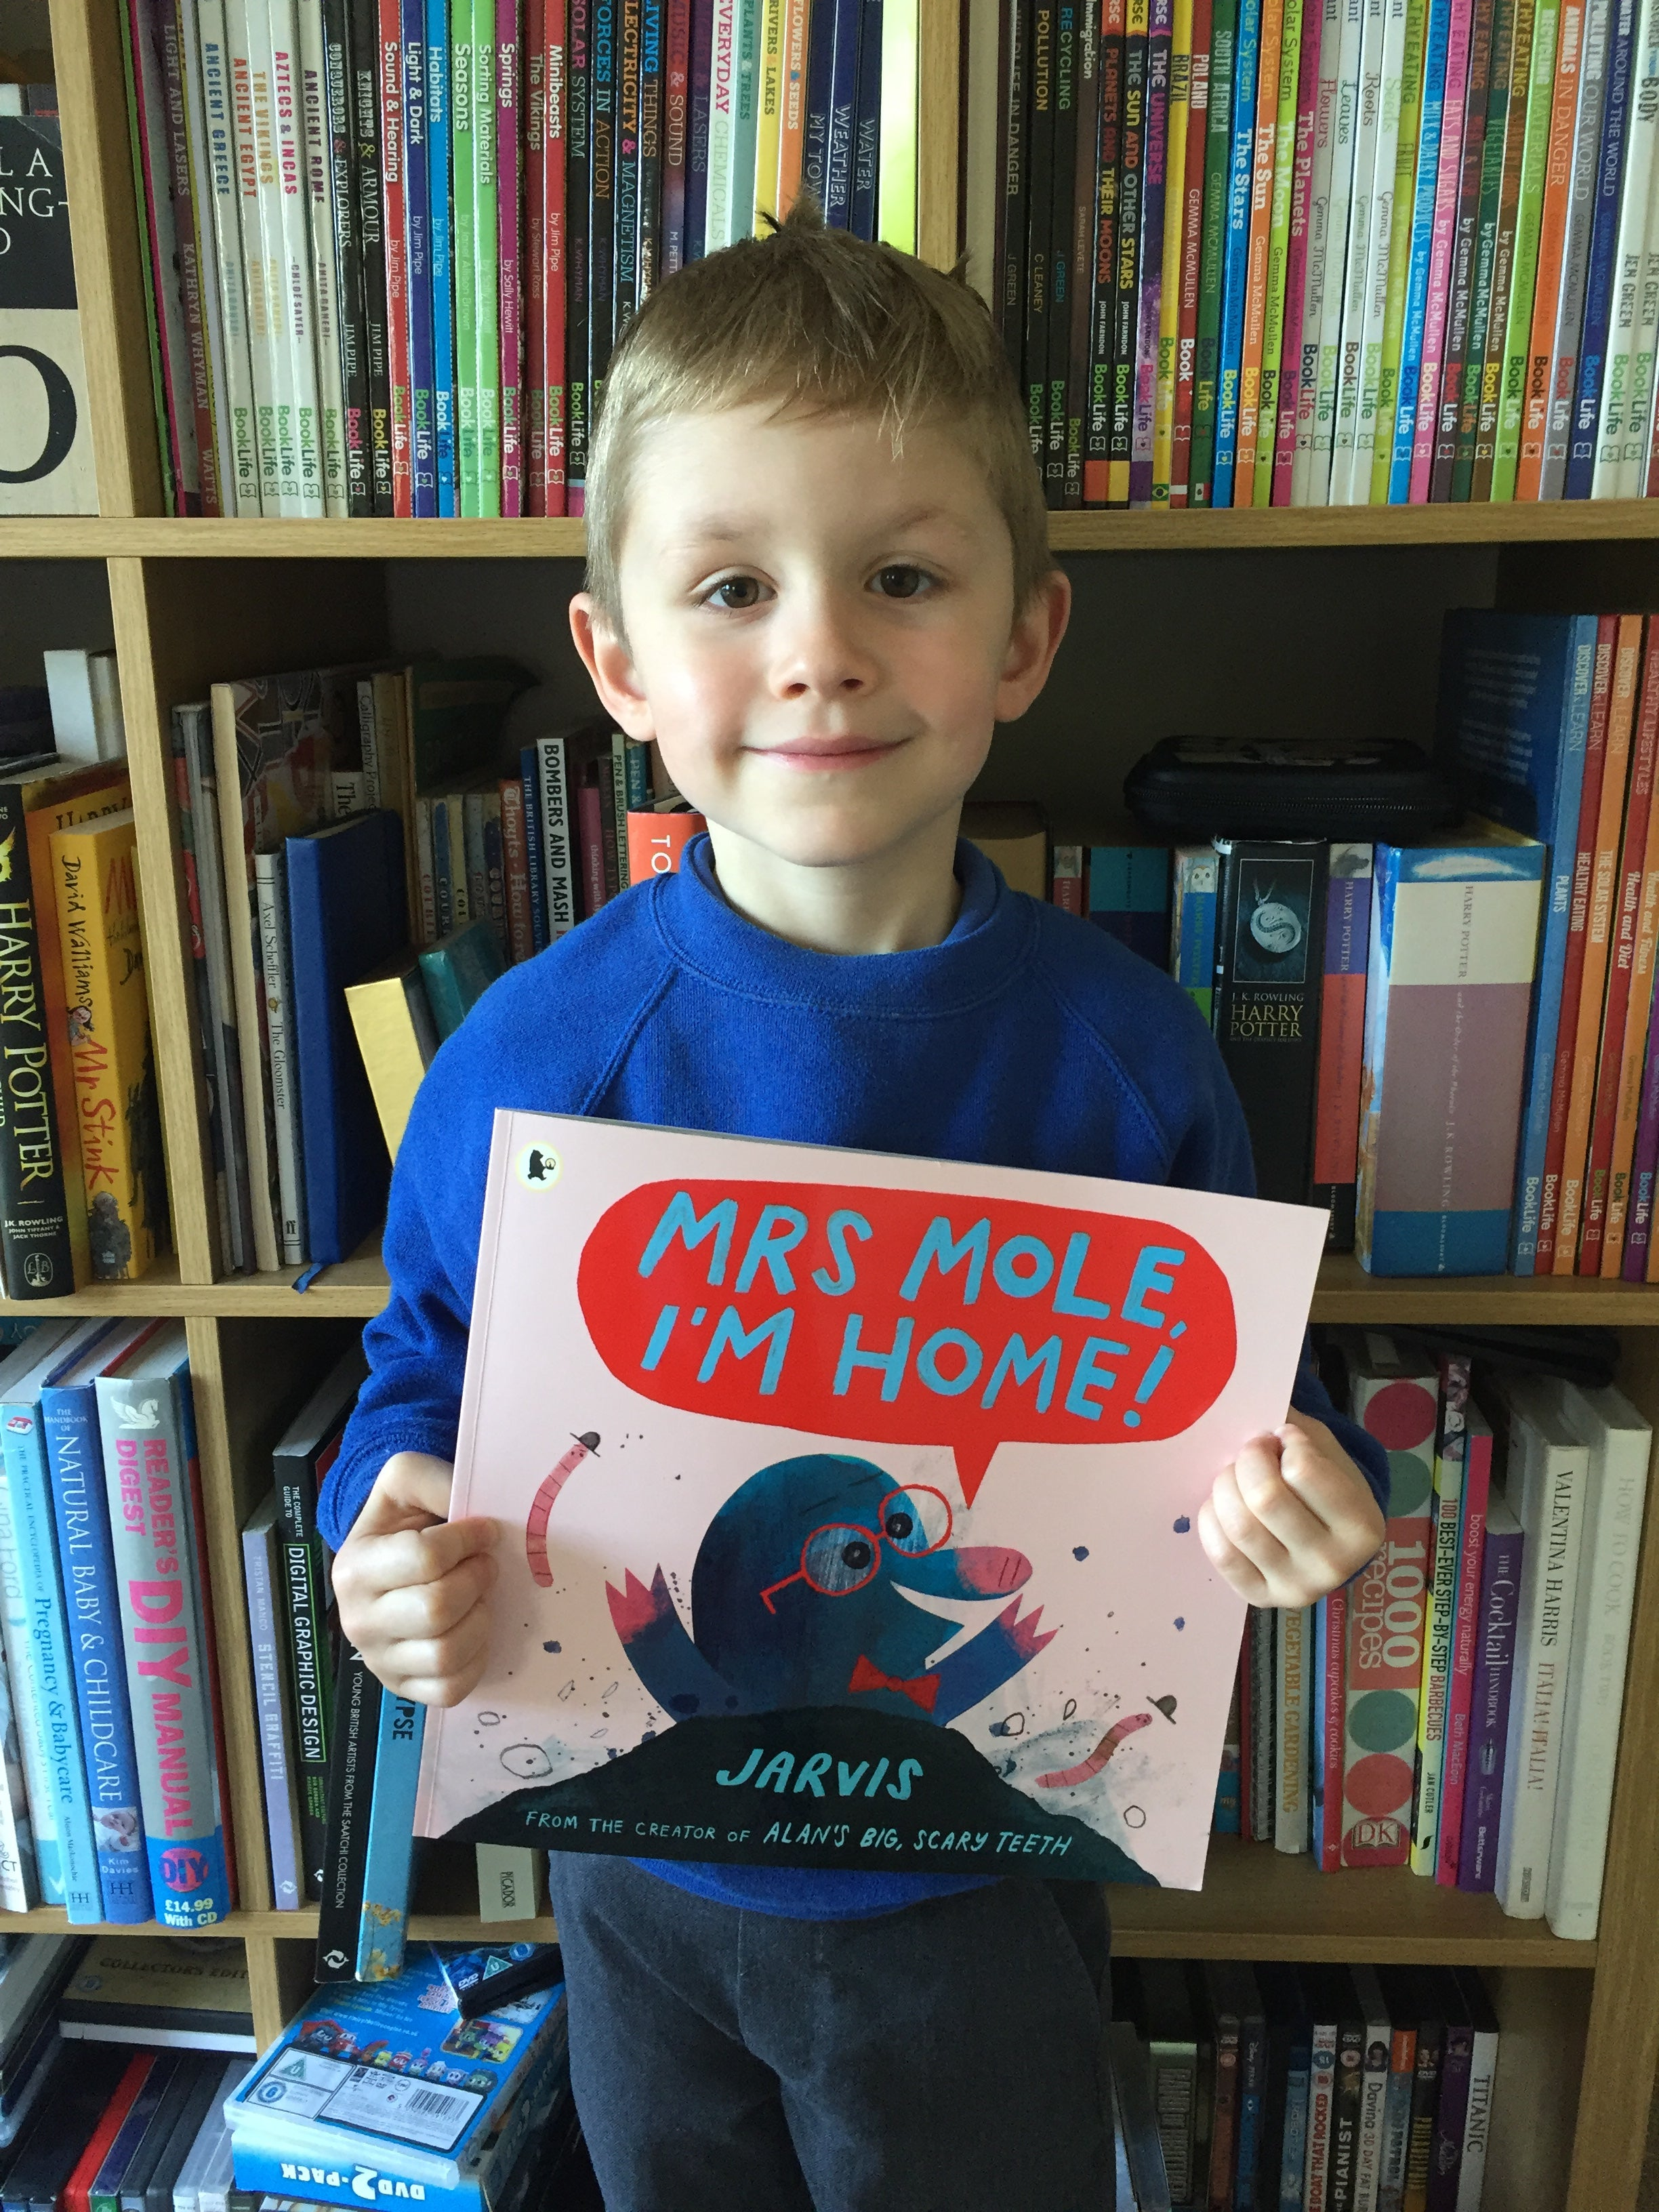 Finlay reviews Mrs Mole, I'm Home